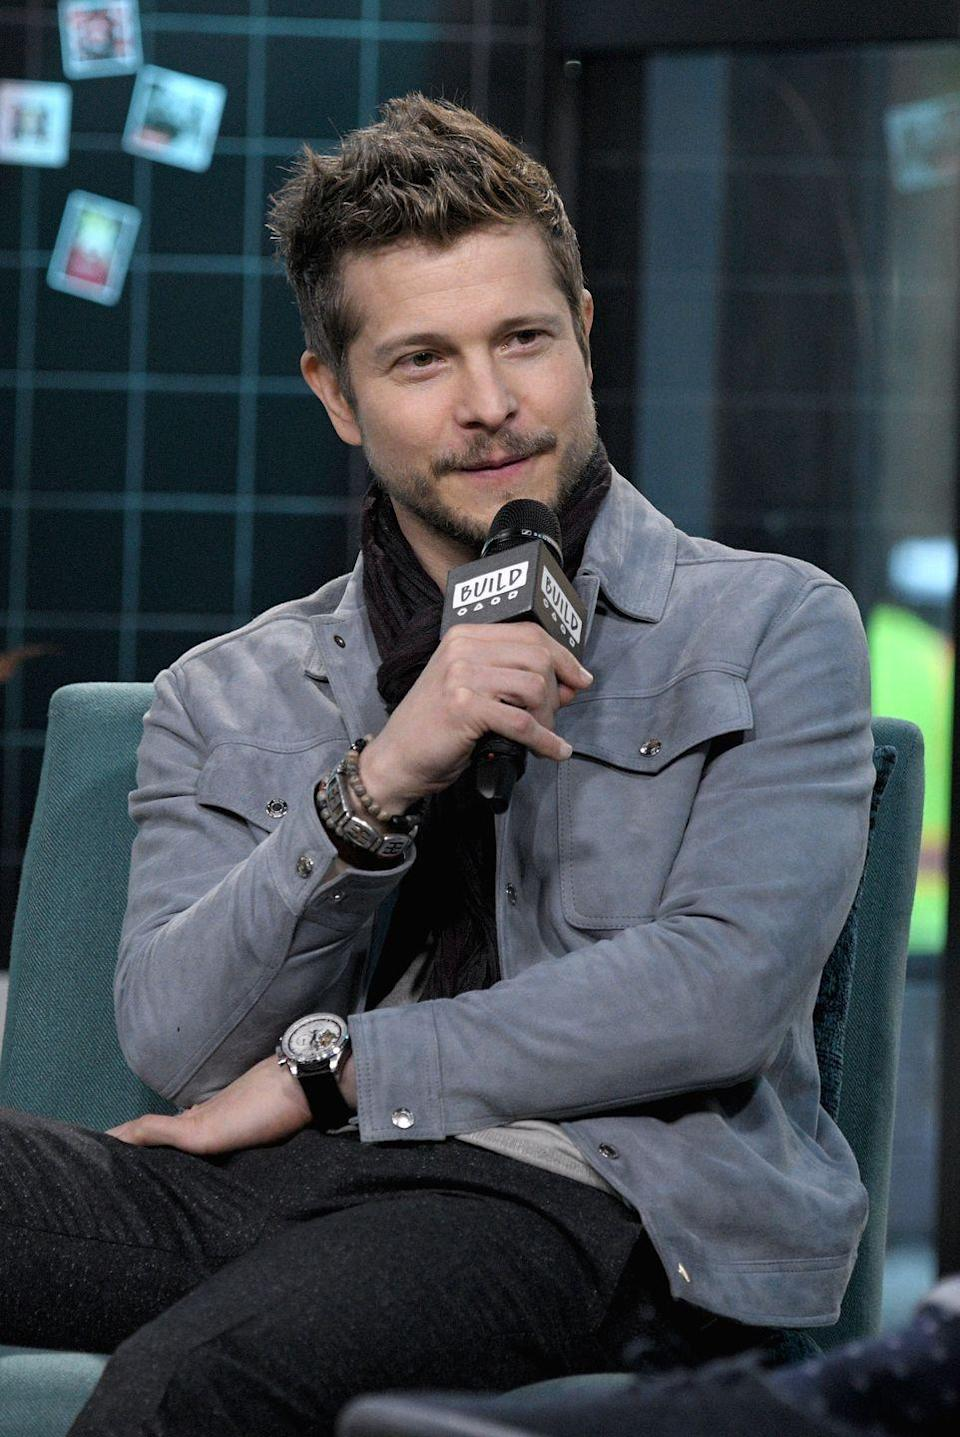 <p>Since his appearance on <em>FNL</em>, Czuchry had a starring role in <em>The Good Wife</em> and reprised his role as Logan Huntzberger in <em>Gilmore Girls: A Year in the Life</em>. He is currently starring as Dr. Conrad Hawkins on <em>The Resident</em>, which is now in its third season. </p>